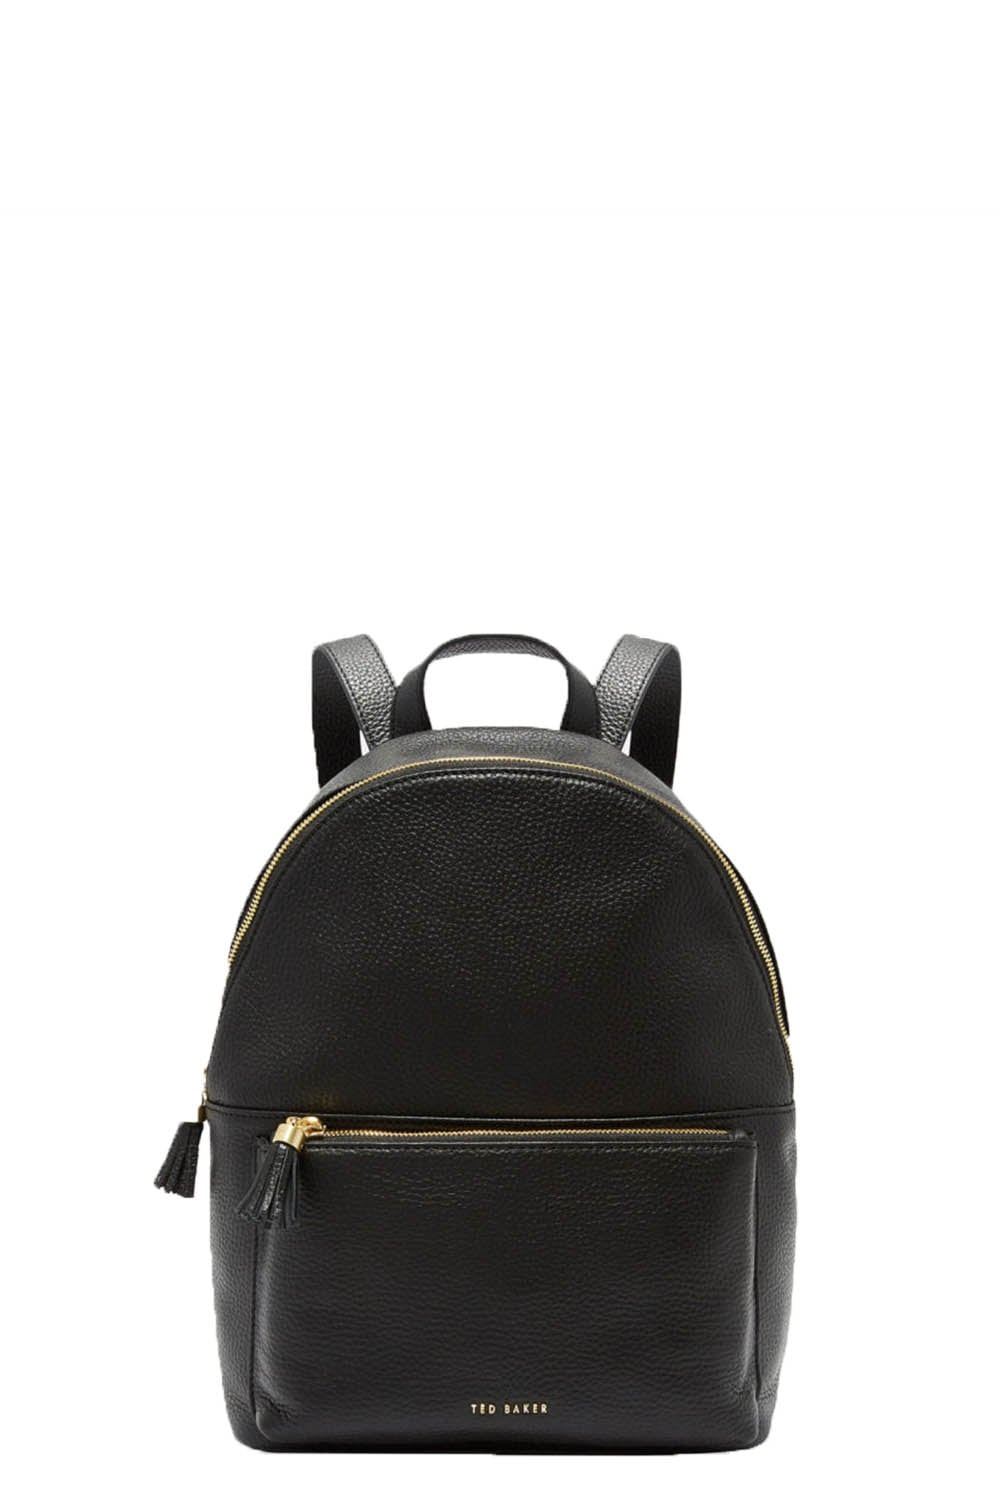 04c487db570 Backpack Ted Baker 016450